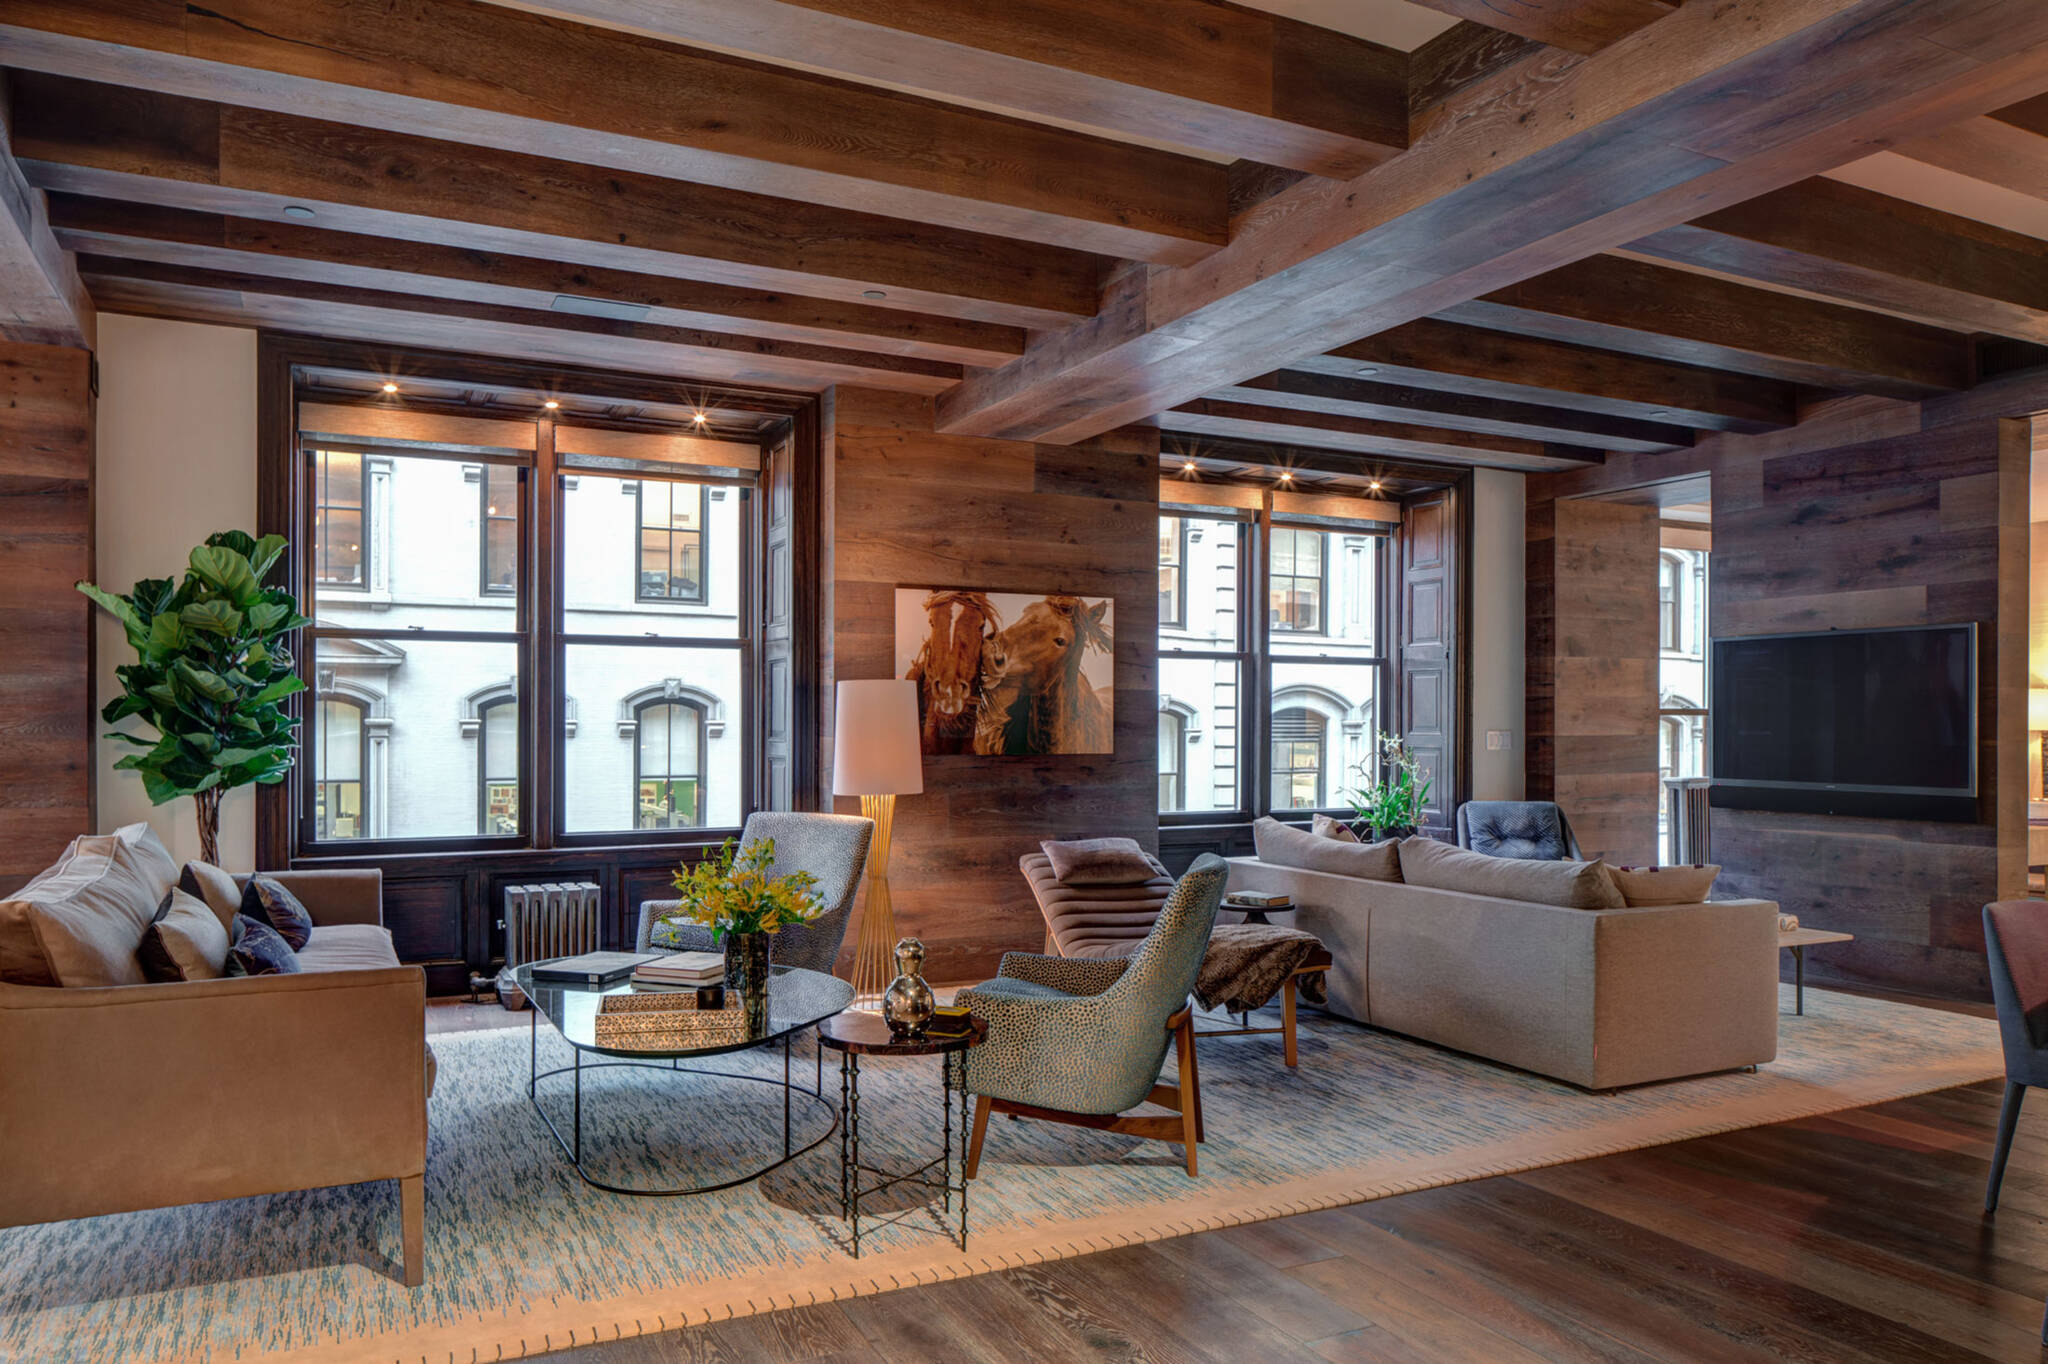 Living room under the wooden beam and cross beams ceiling of the loft renovation project in Union Square, New York City designed by the architecture studio Danny Forster & Architecture